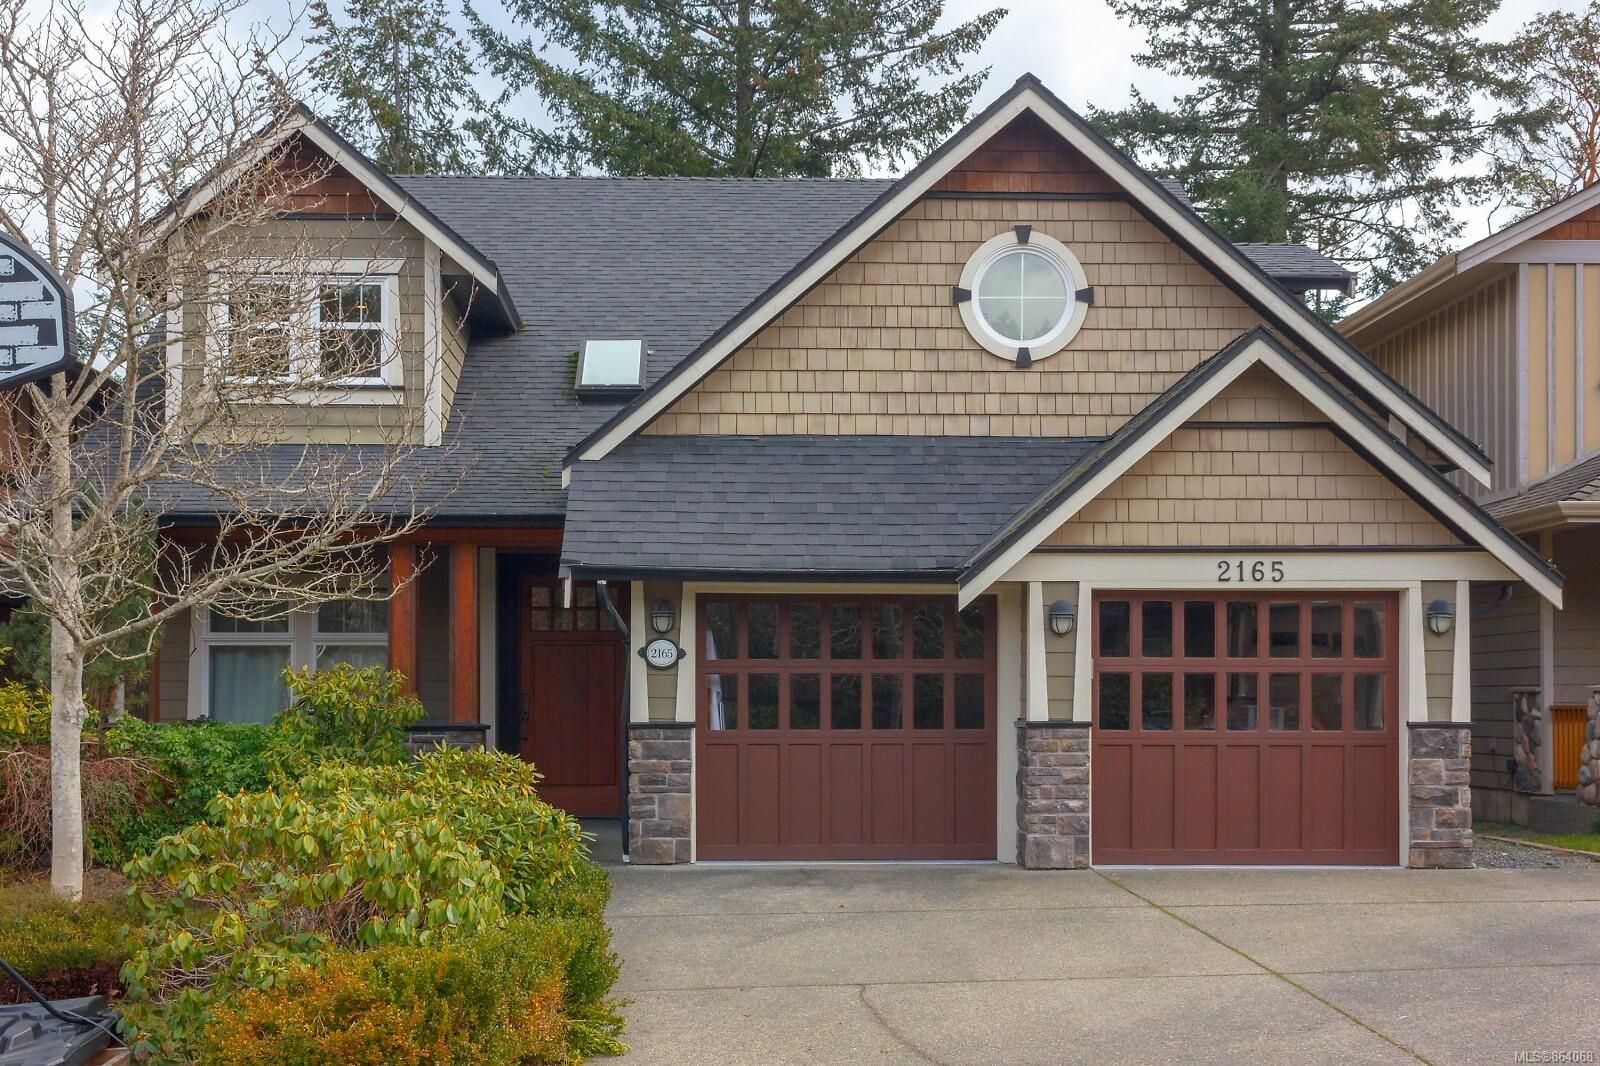 Main Photo: 2165 Stone Gate in : La Bear Mountain House for sale (Langford)  : MLS®# 864068